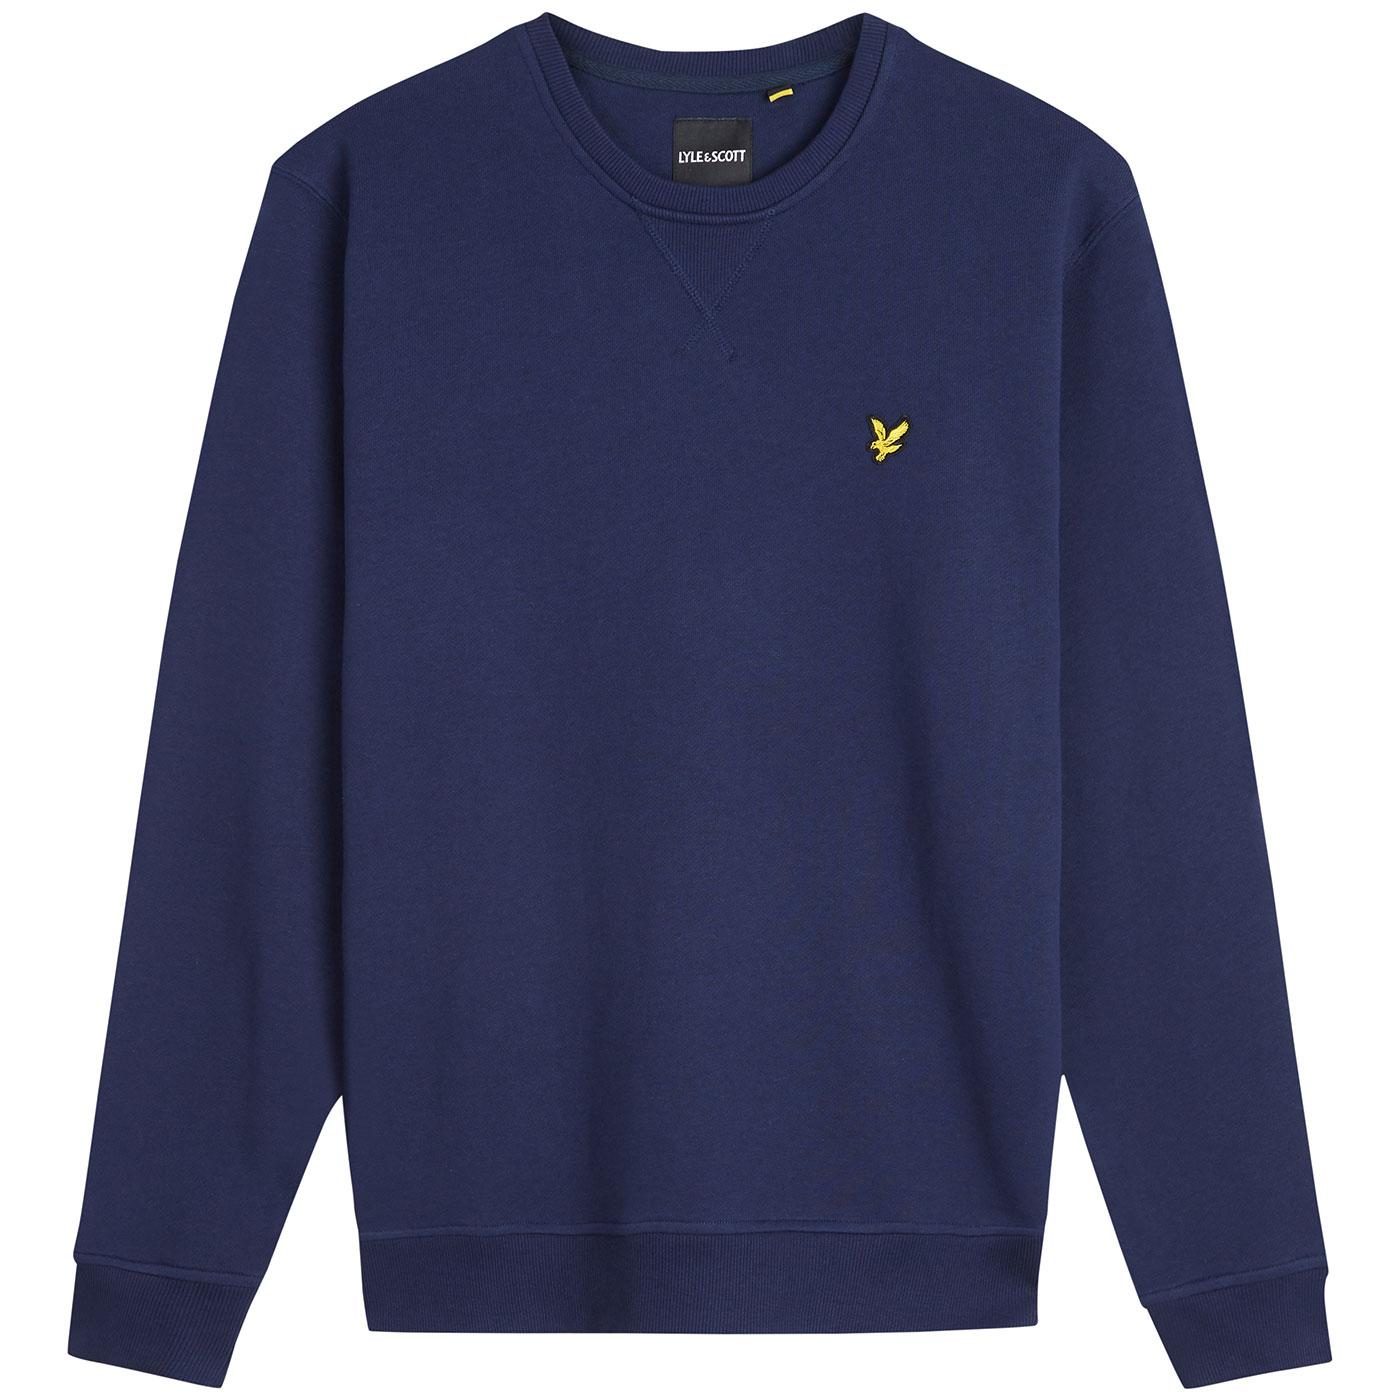 LYLE & SCOTT Men's Mod Crew Neck Sweatshirt NAVY